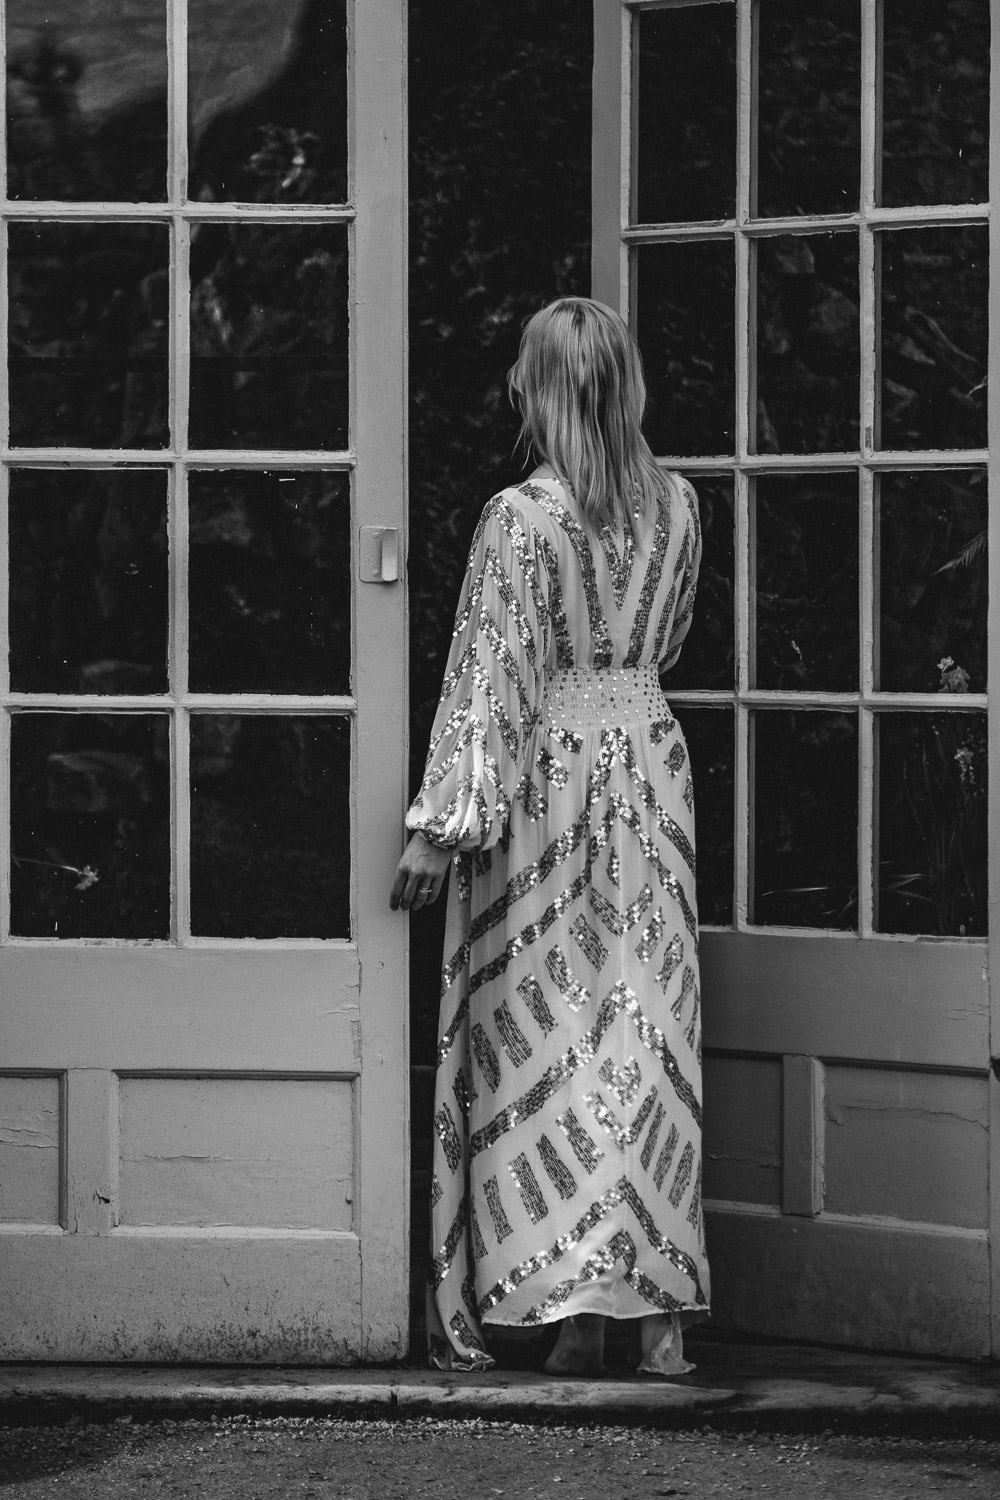 Black and white image of a women walking through doors of an orangery.